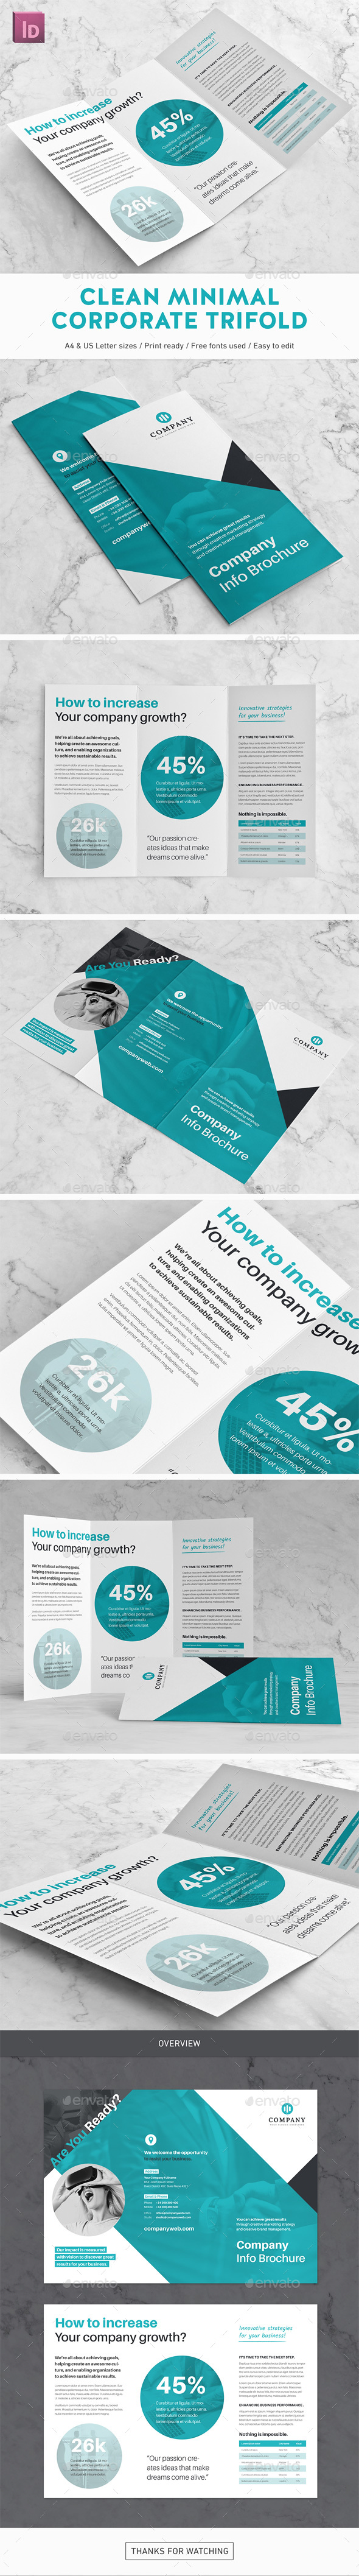 Clean Minimal Corporate Trifold Brochure - Corporate Brochures